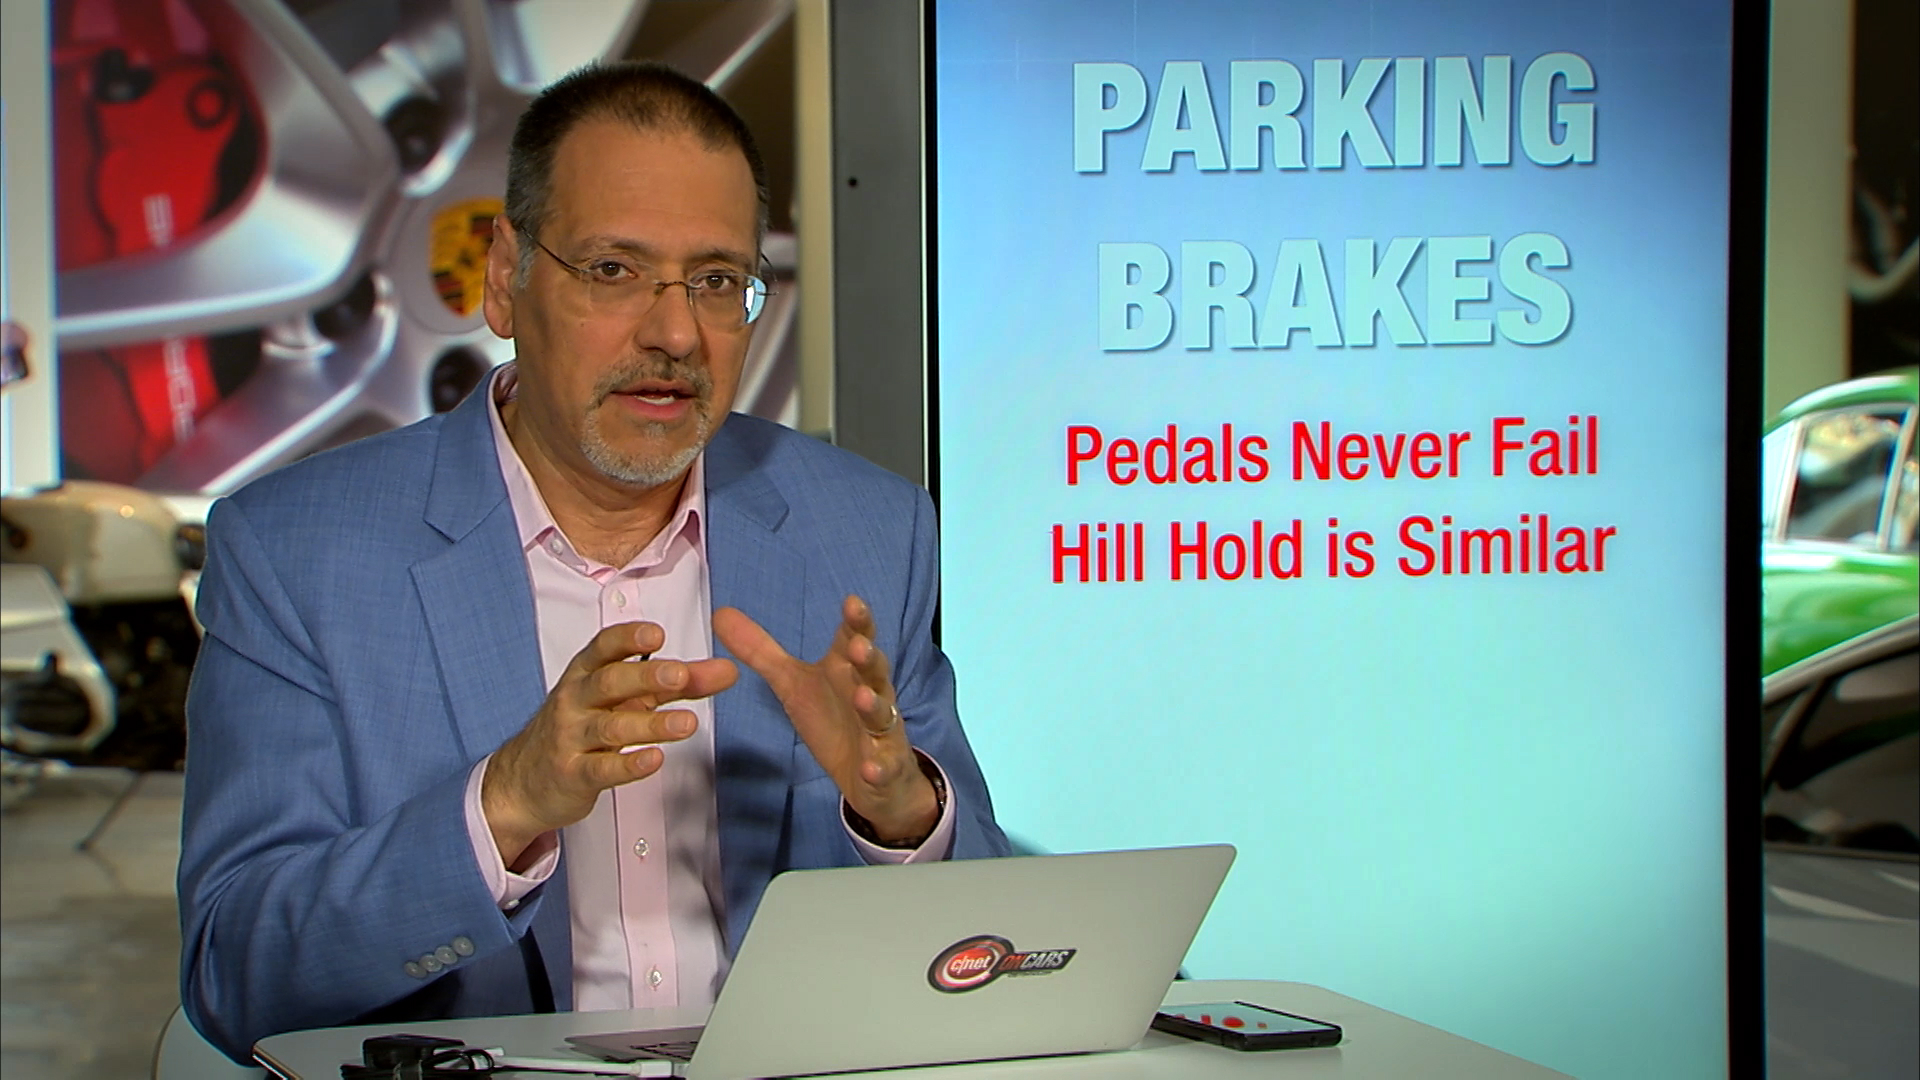 Video: Your emails: Foot-actuated vs. electronic parking brakes